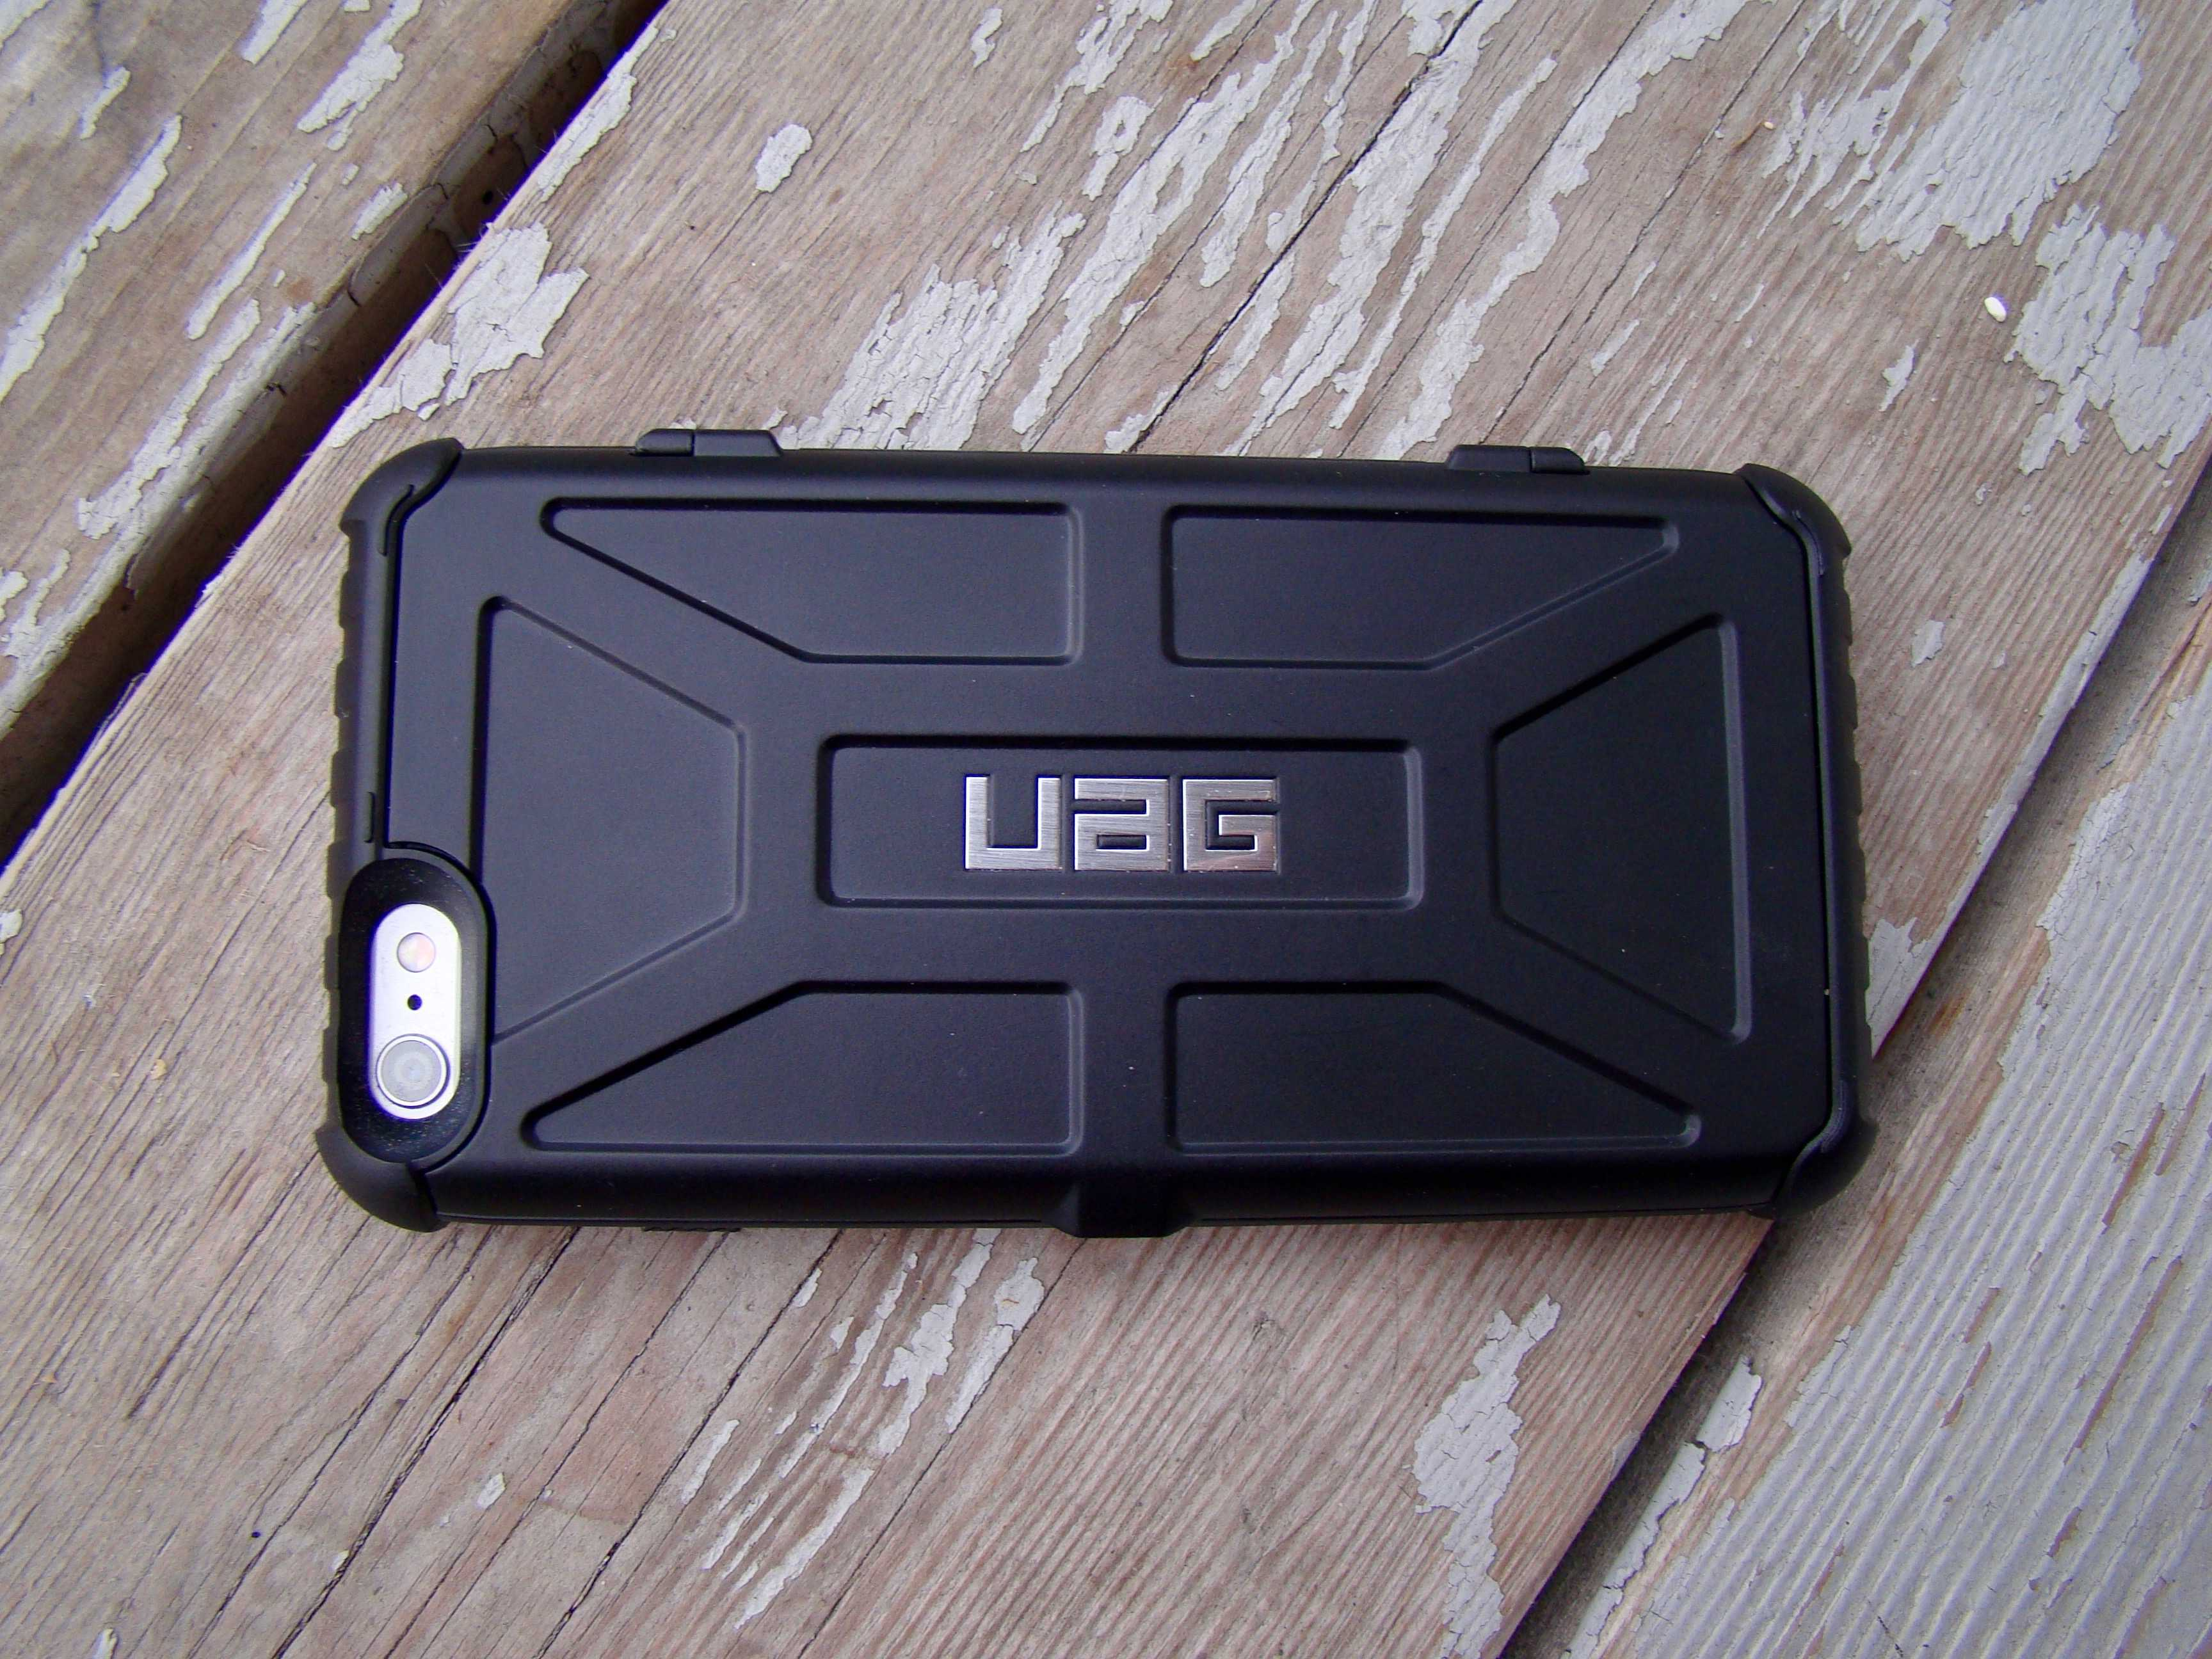 The UAG Trooper It features a rugged design with reinforced corners for extra drop protection.